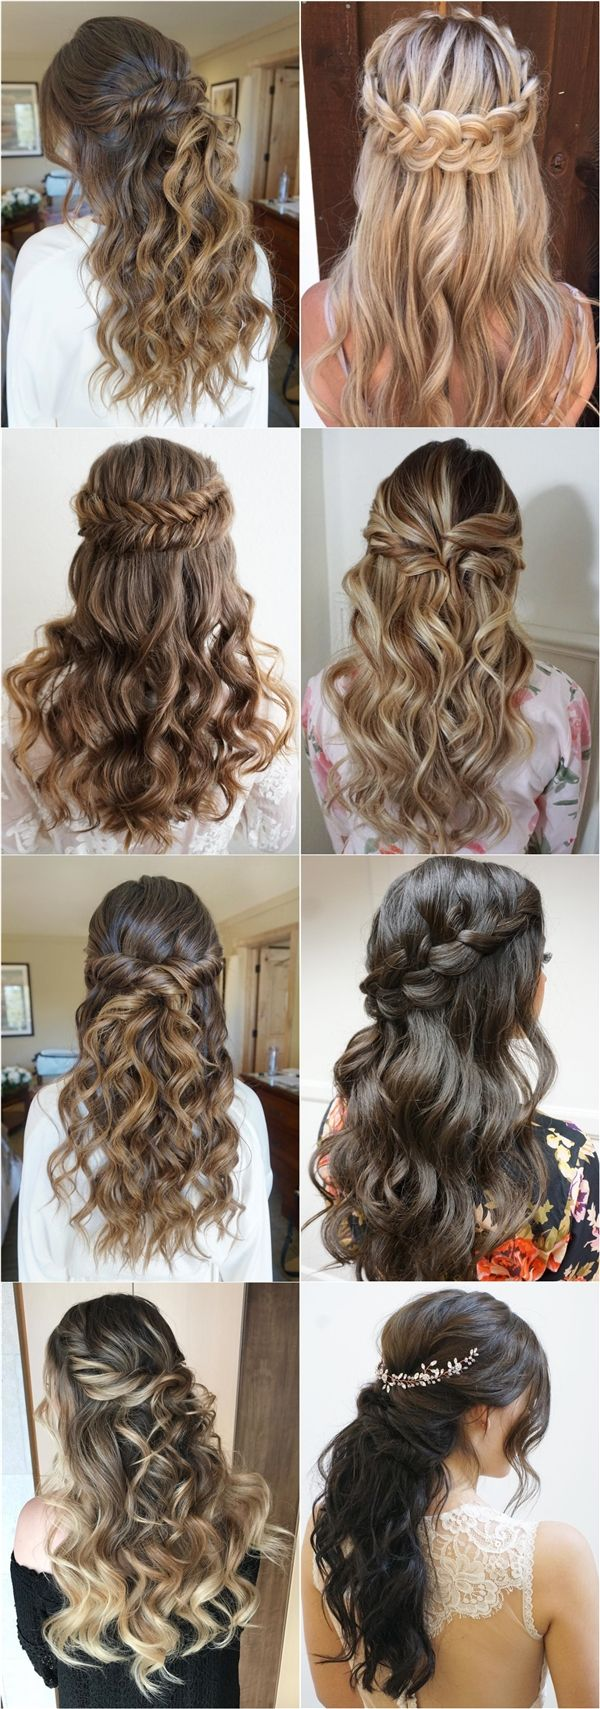 High 20 Half Up Half Down Marriage ceremony Hairstyles from Heidi Marie Garrett